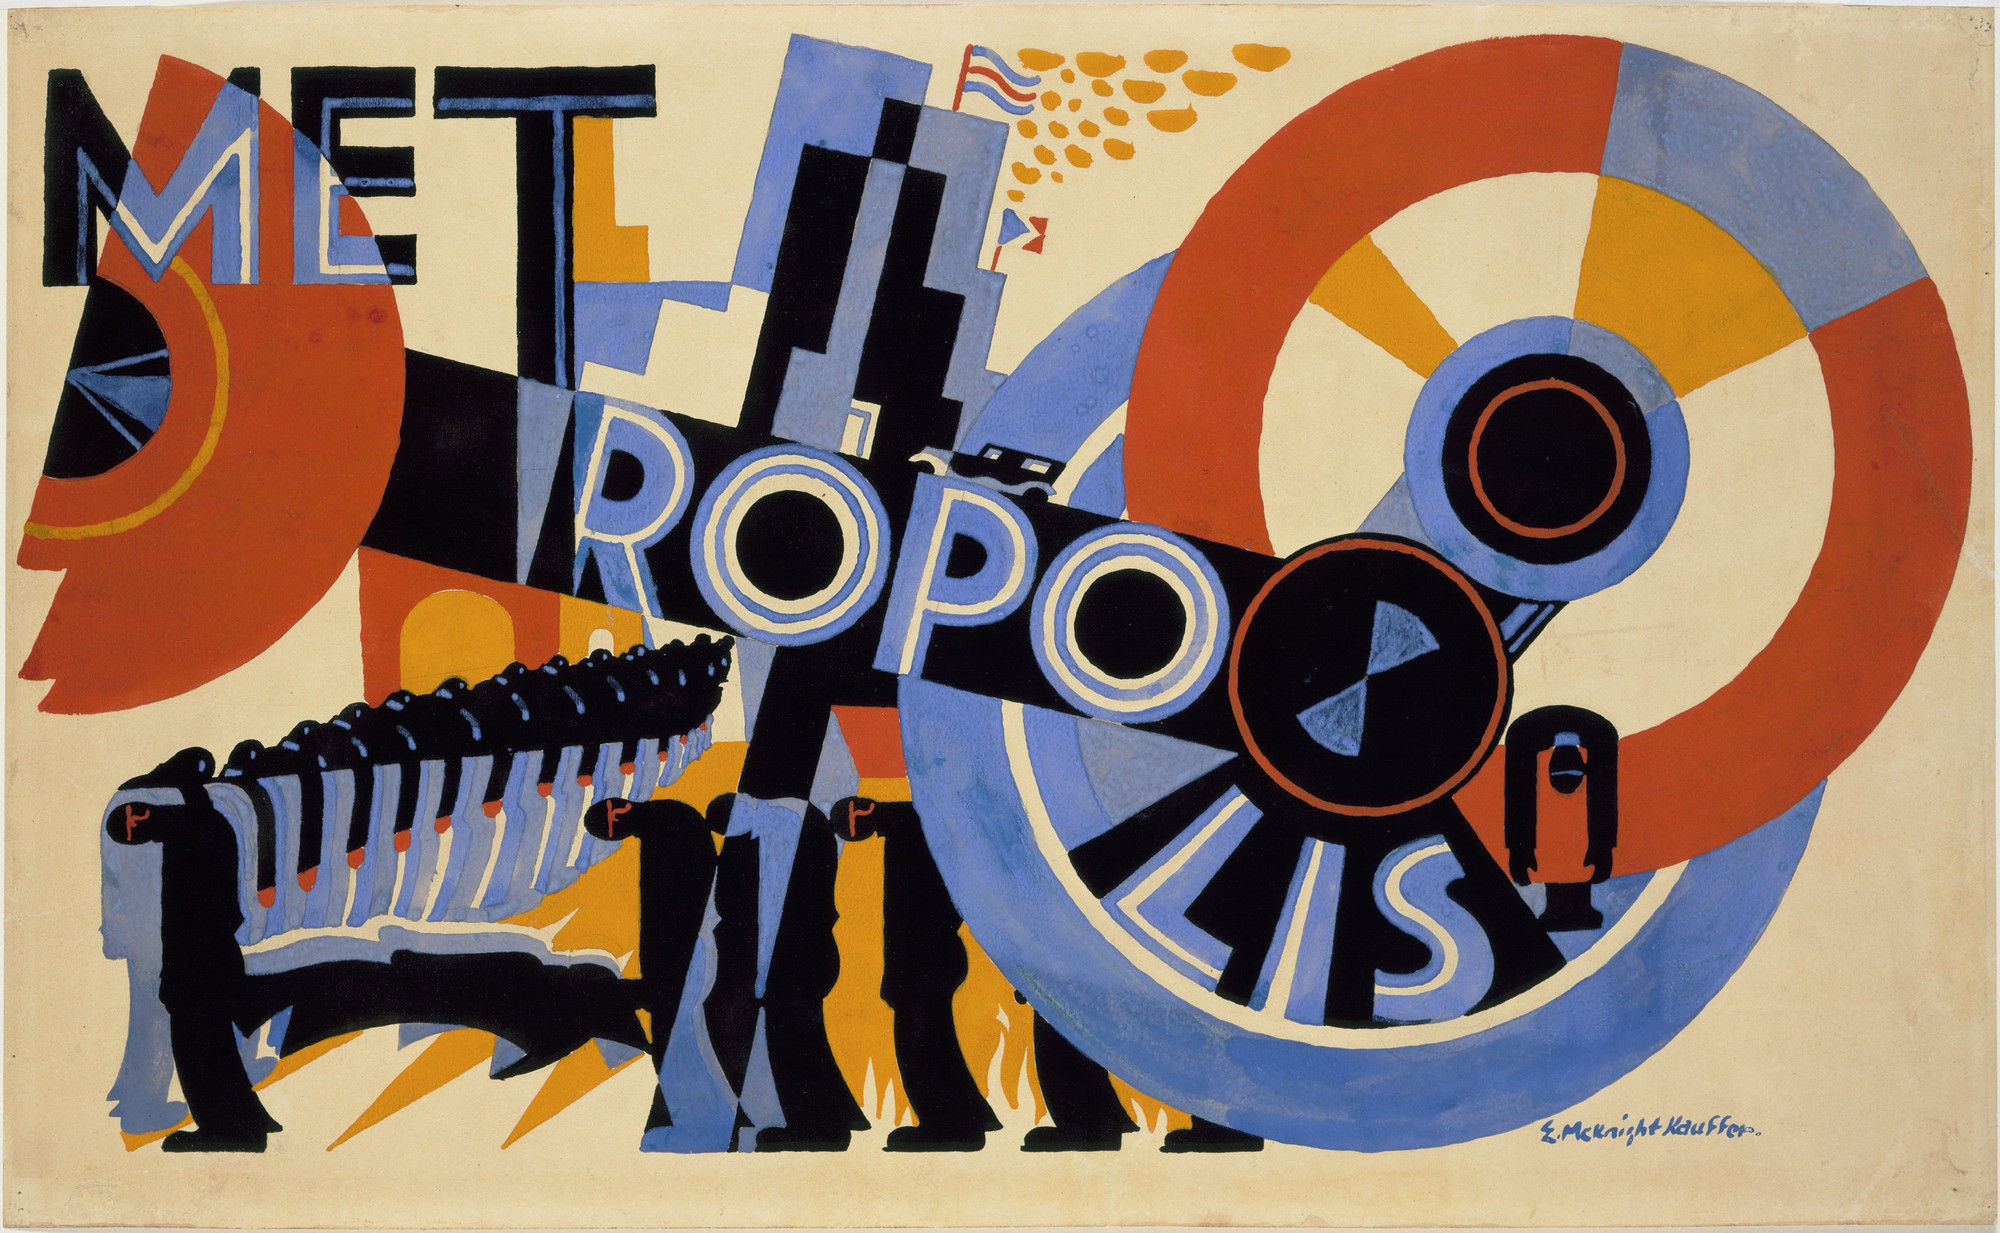 E. McKnight Kauffer. Poster design for the film Metropolis by Fritz Lang. 1926